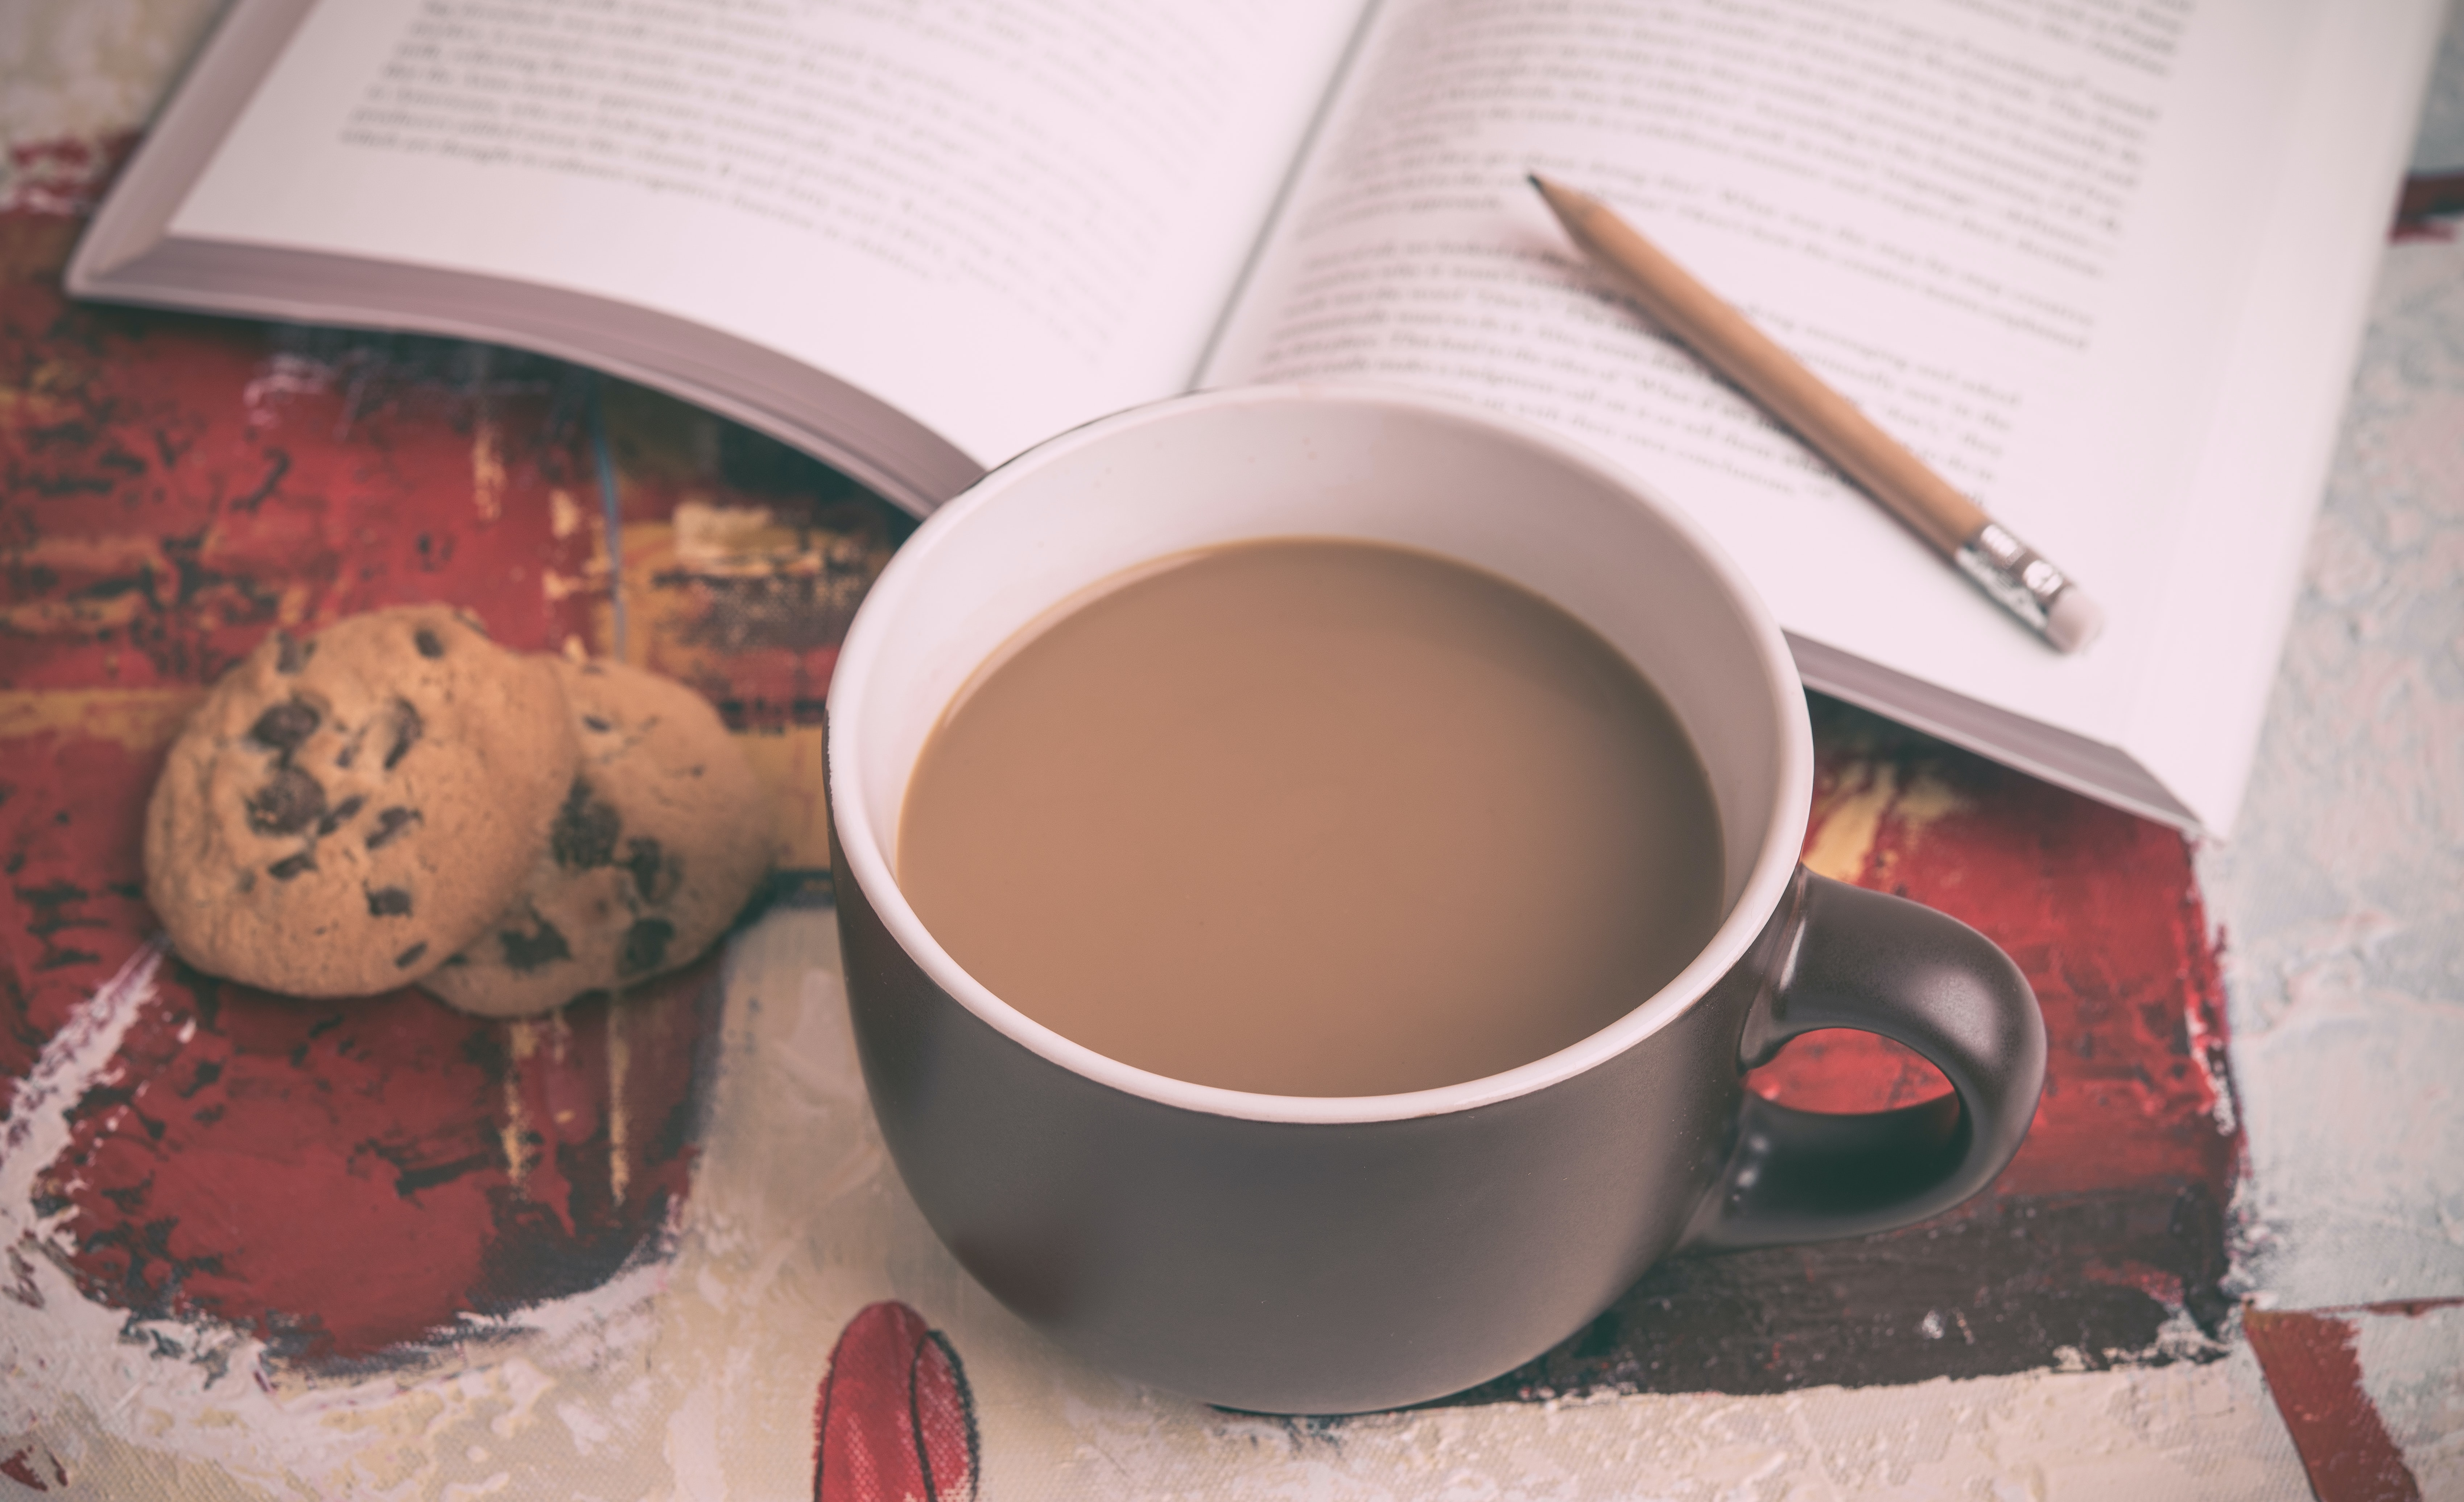 A cup of coffee in a brown mug next to some chocolate chip cookies and a book on a table